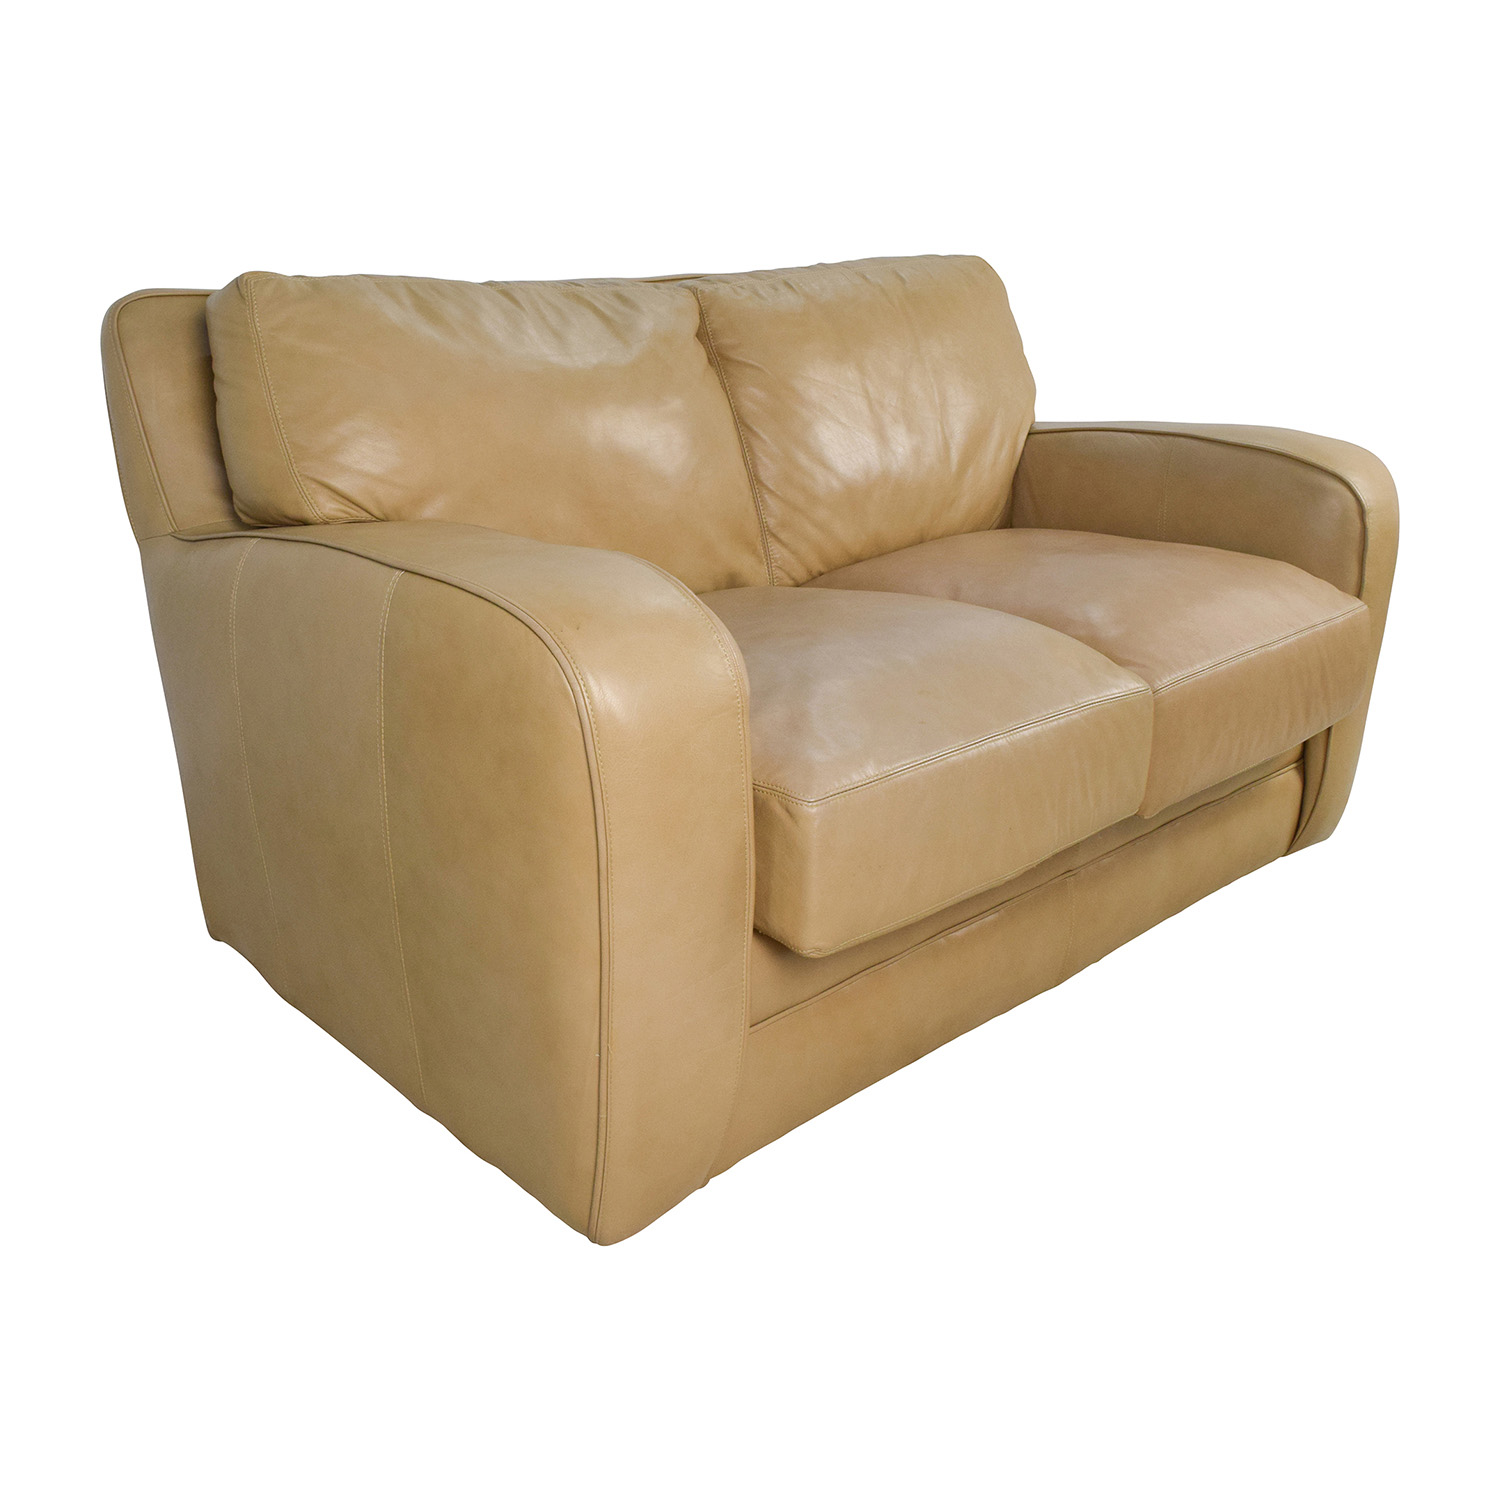 50 Off Beige Leather Loveseat Sofas